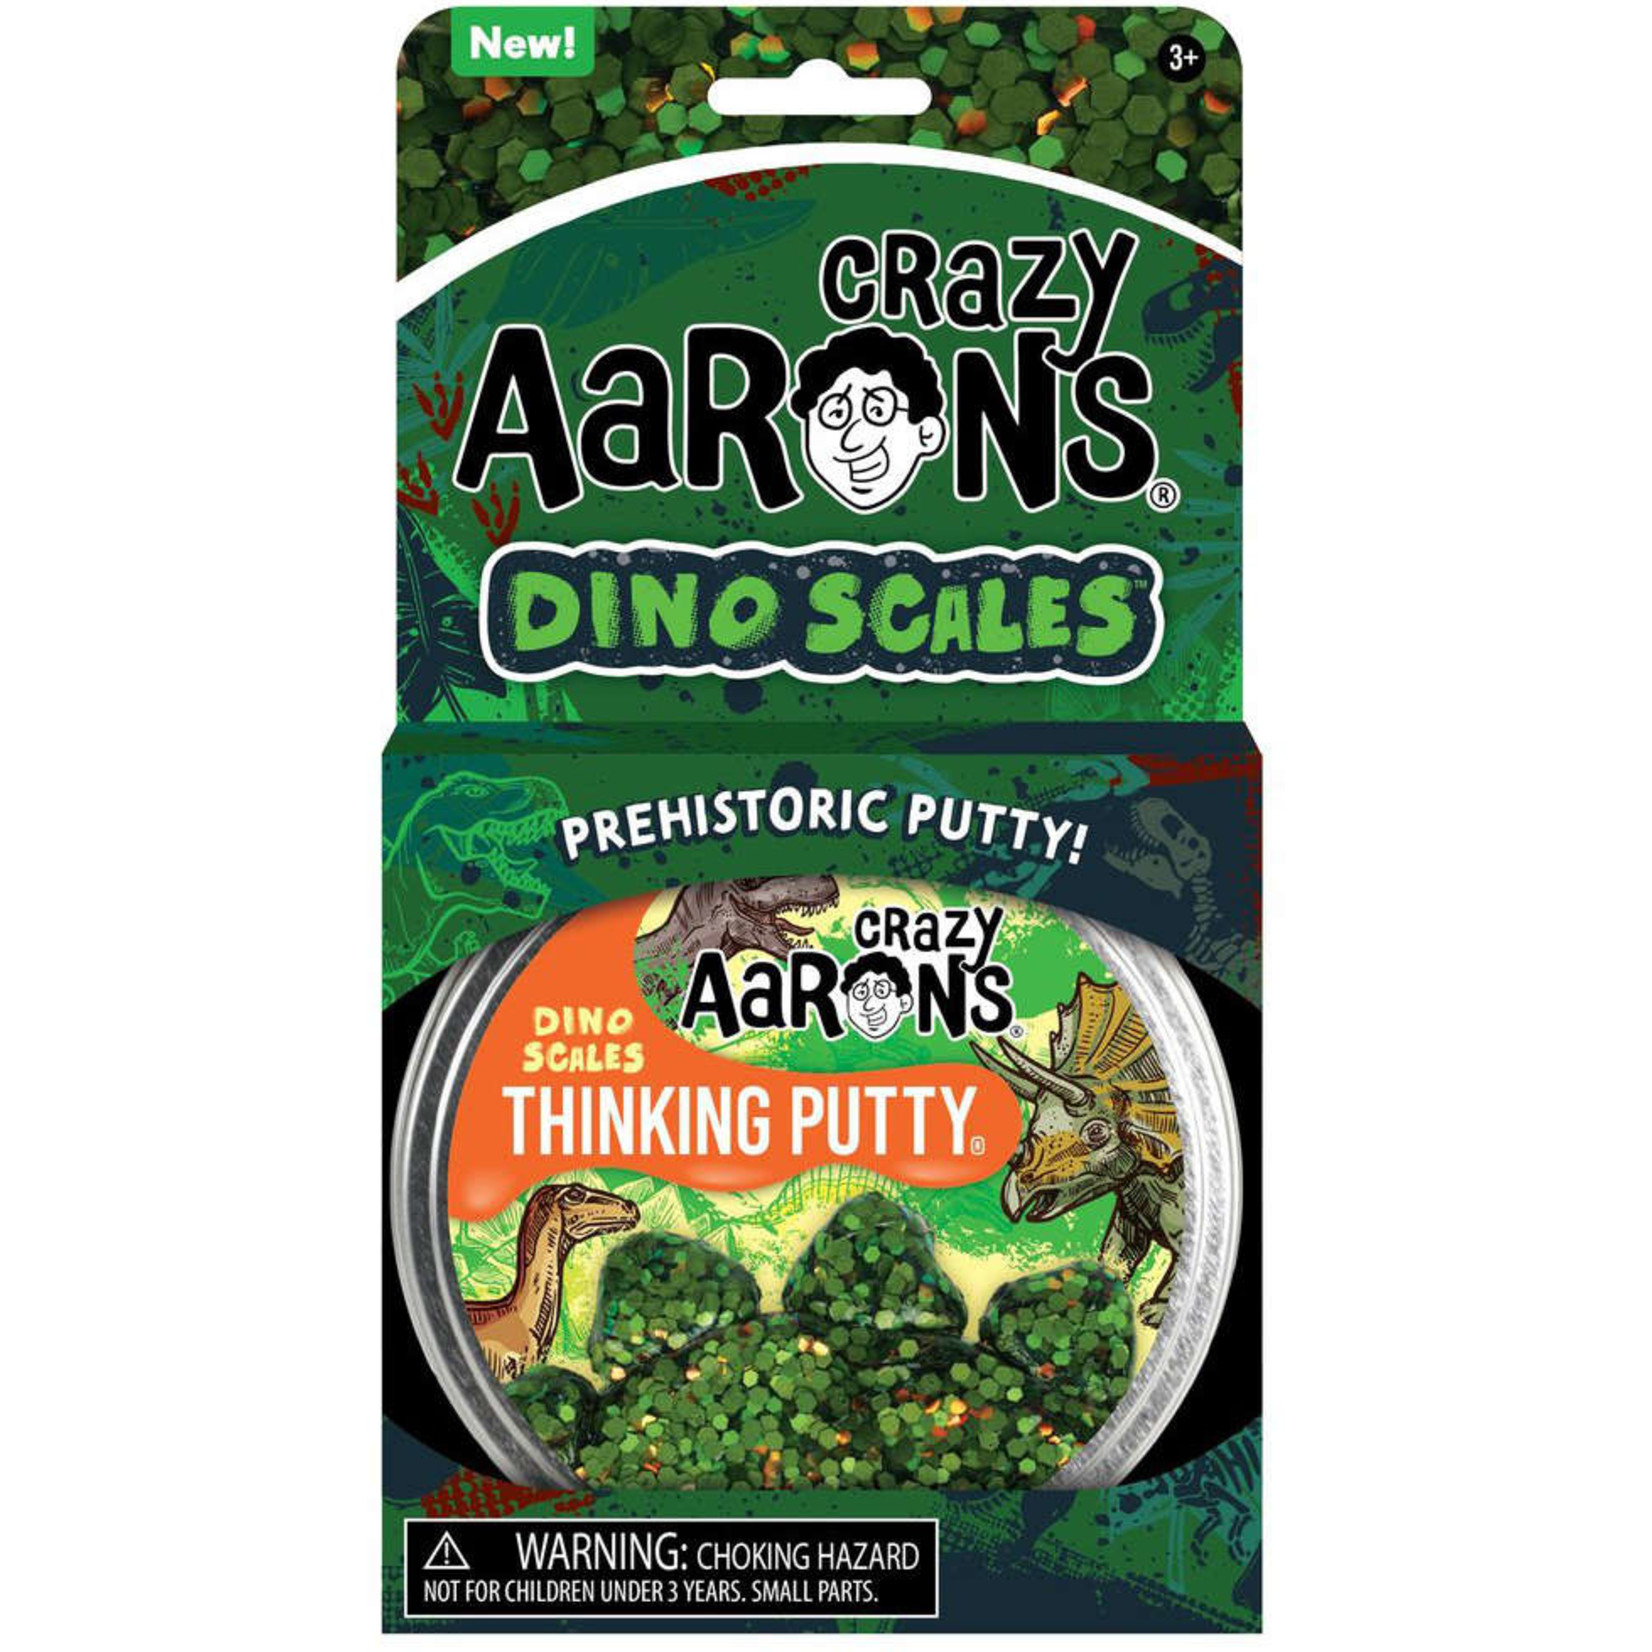 CRAZY AARON'S DINO SCALES PUTTY